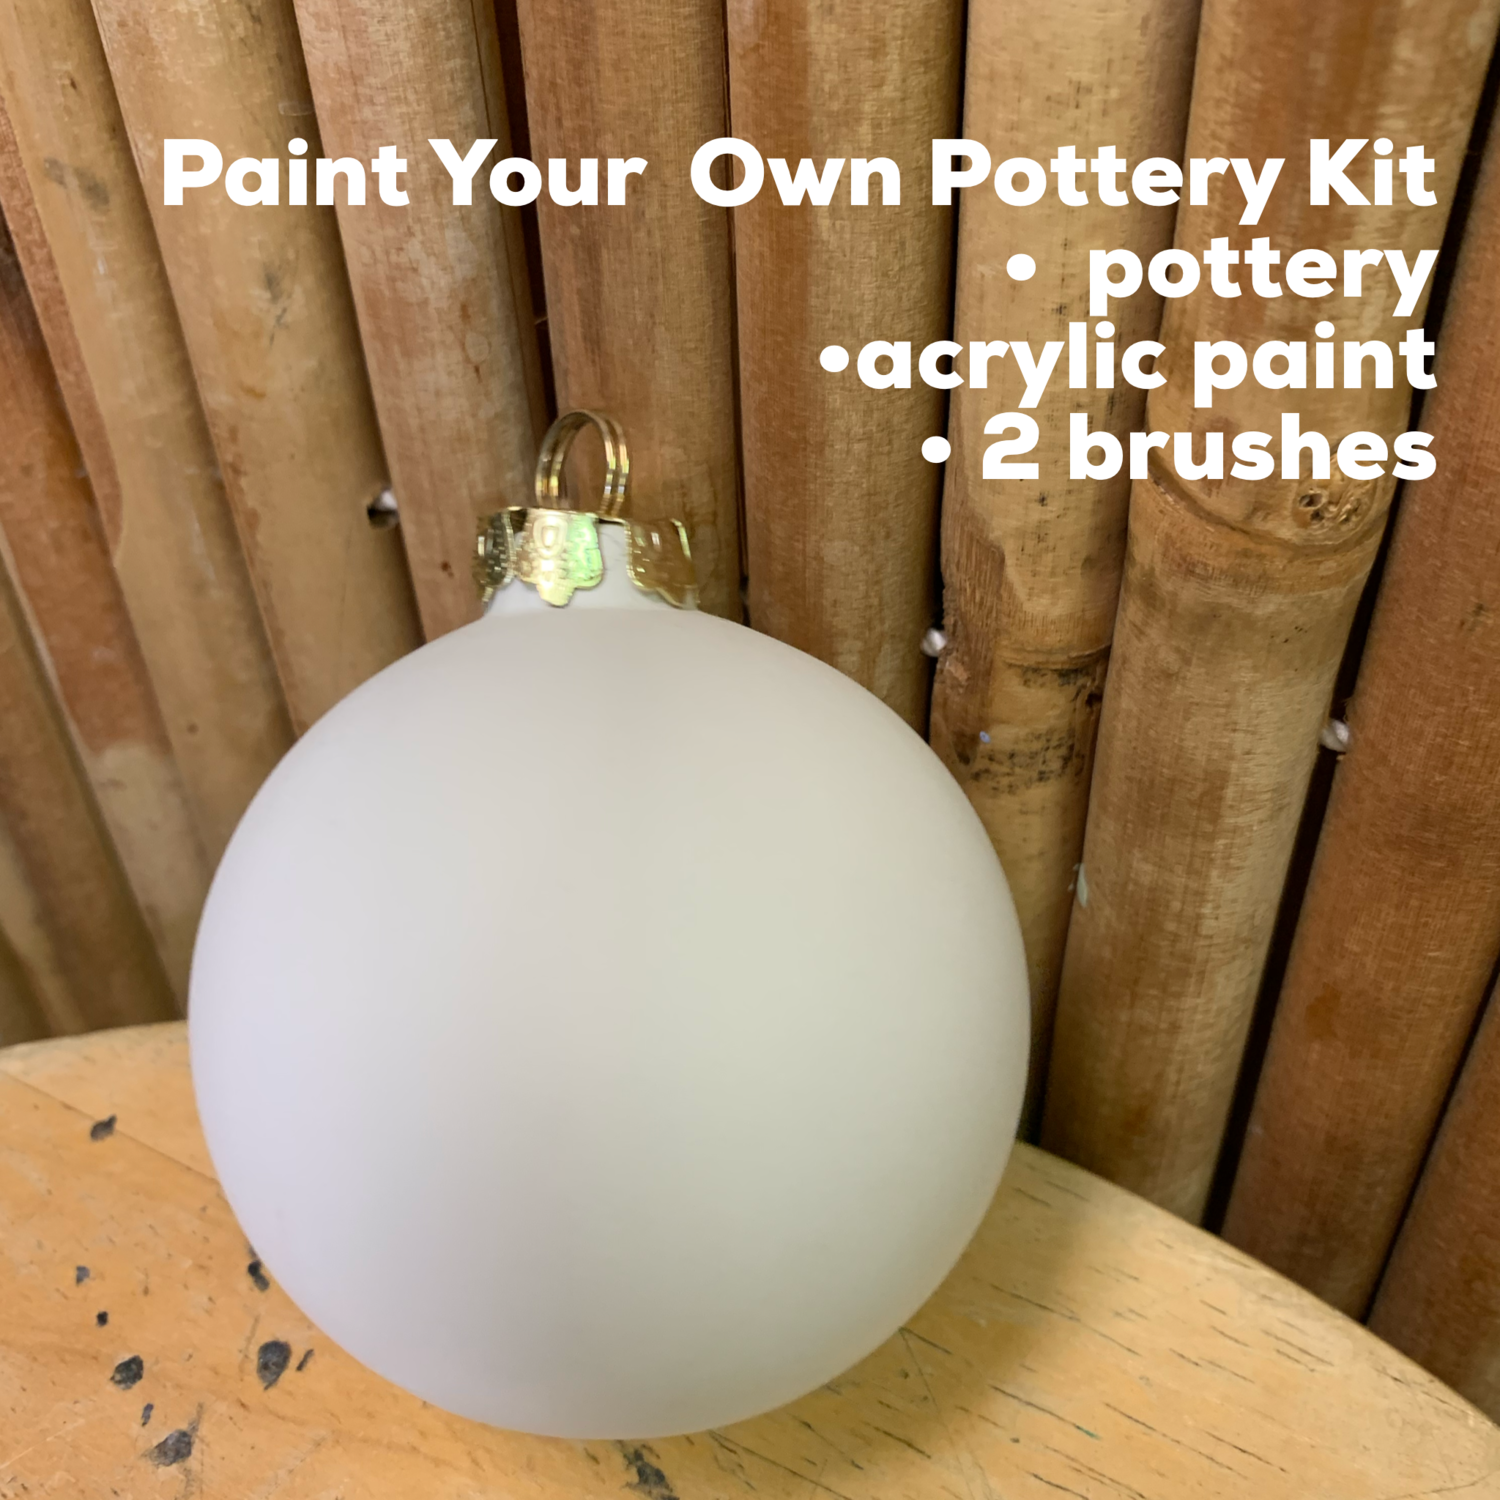 NO FIRE Paint Your Own Pottery Kit -  Ceramic Round Ornament Acrylic Painting Kit